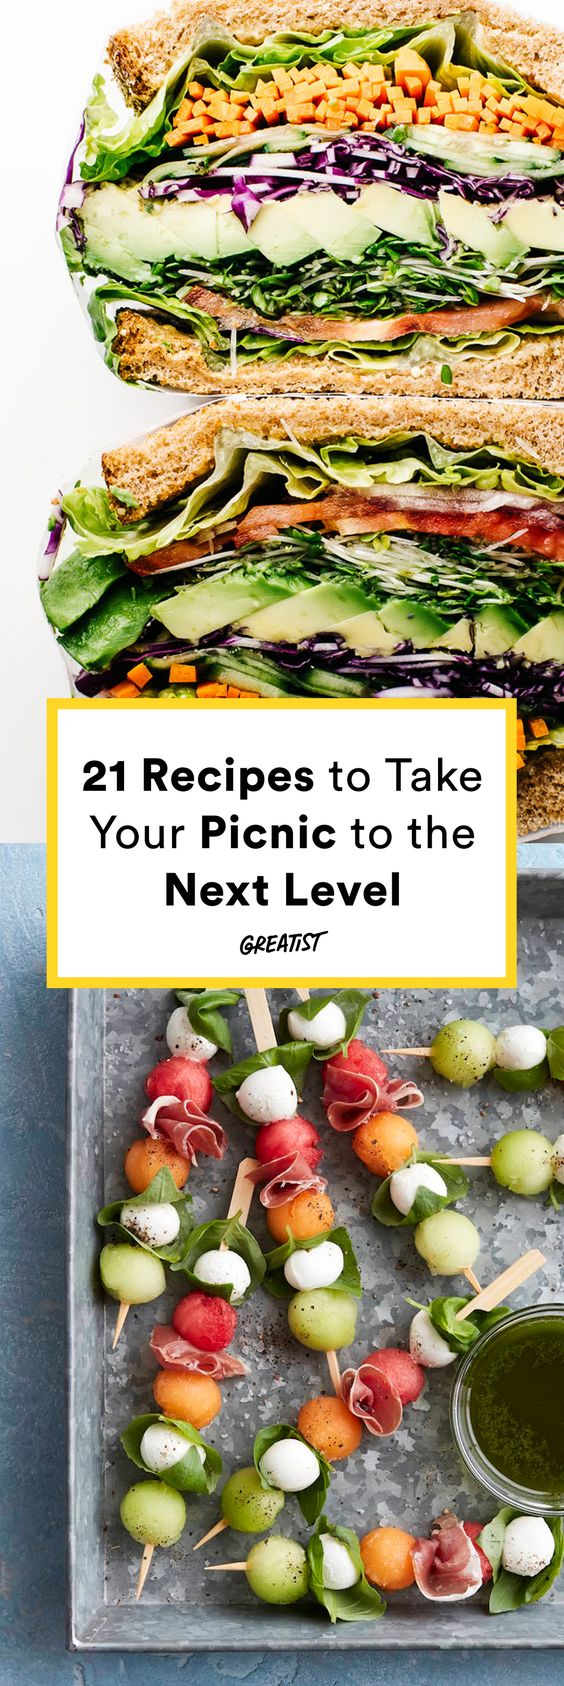 21 Recipes to Take Your Picnic to the Next Level